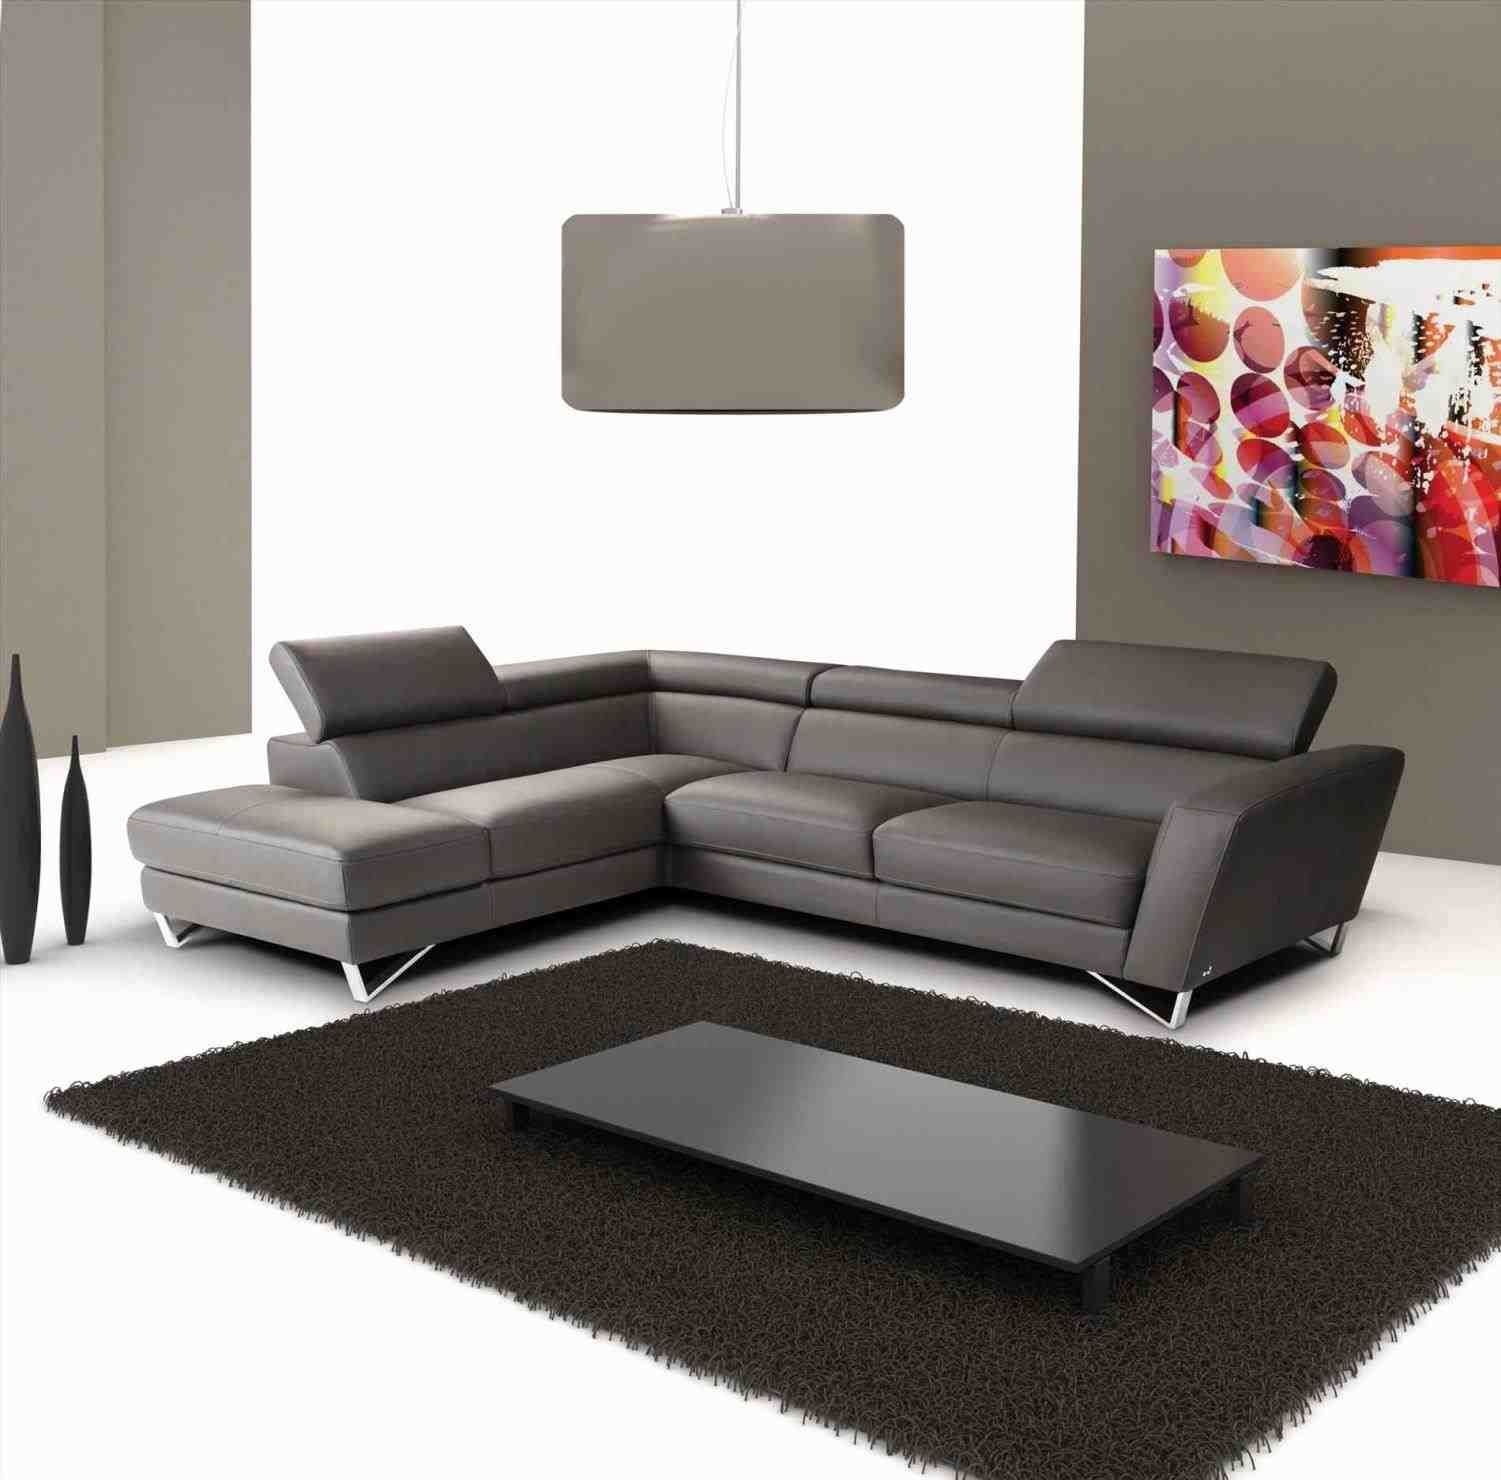 Cheap Sectionals Montreal Full Size Of Furniture Sofa Sectional Near Me Sofa Bed Modern Sofa Sectional Italian Leather Sectional Sofa Leather Sectional Sofas